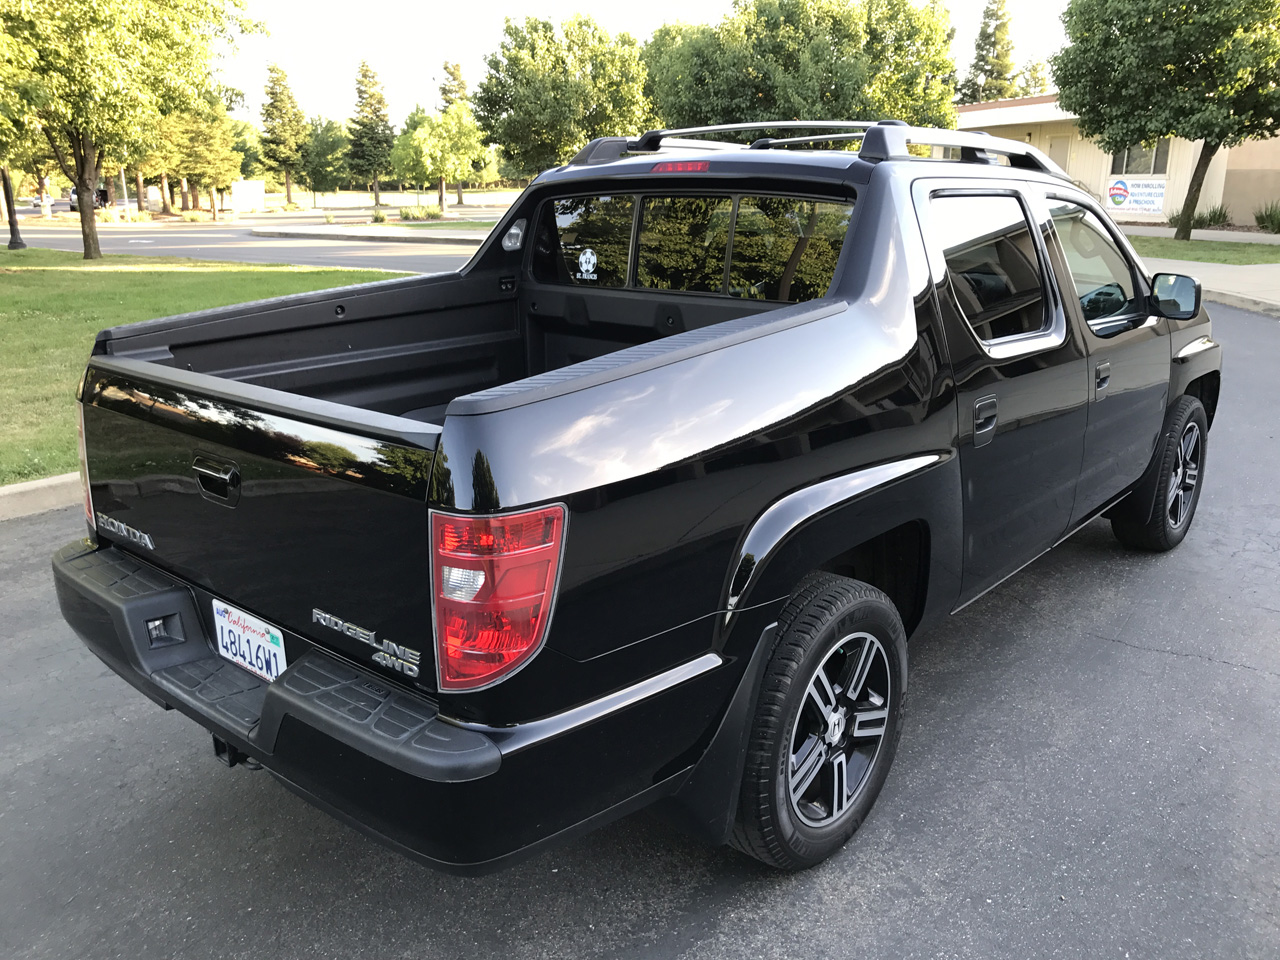 2013 honda ridgeline sport 4wd pickup 4 door ebay. Black Bedroom Furniture Sets. Home Design Ideas